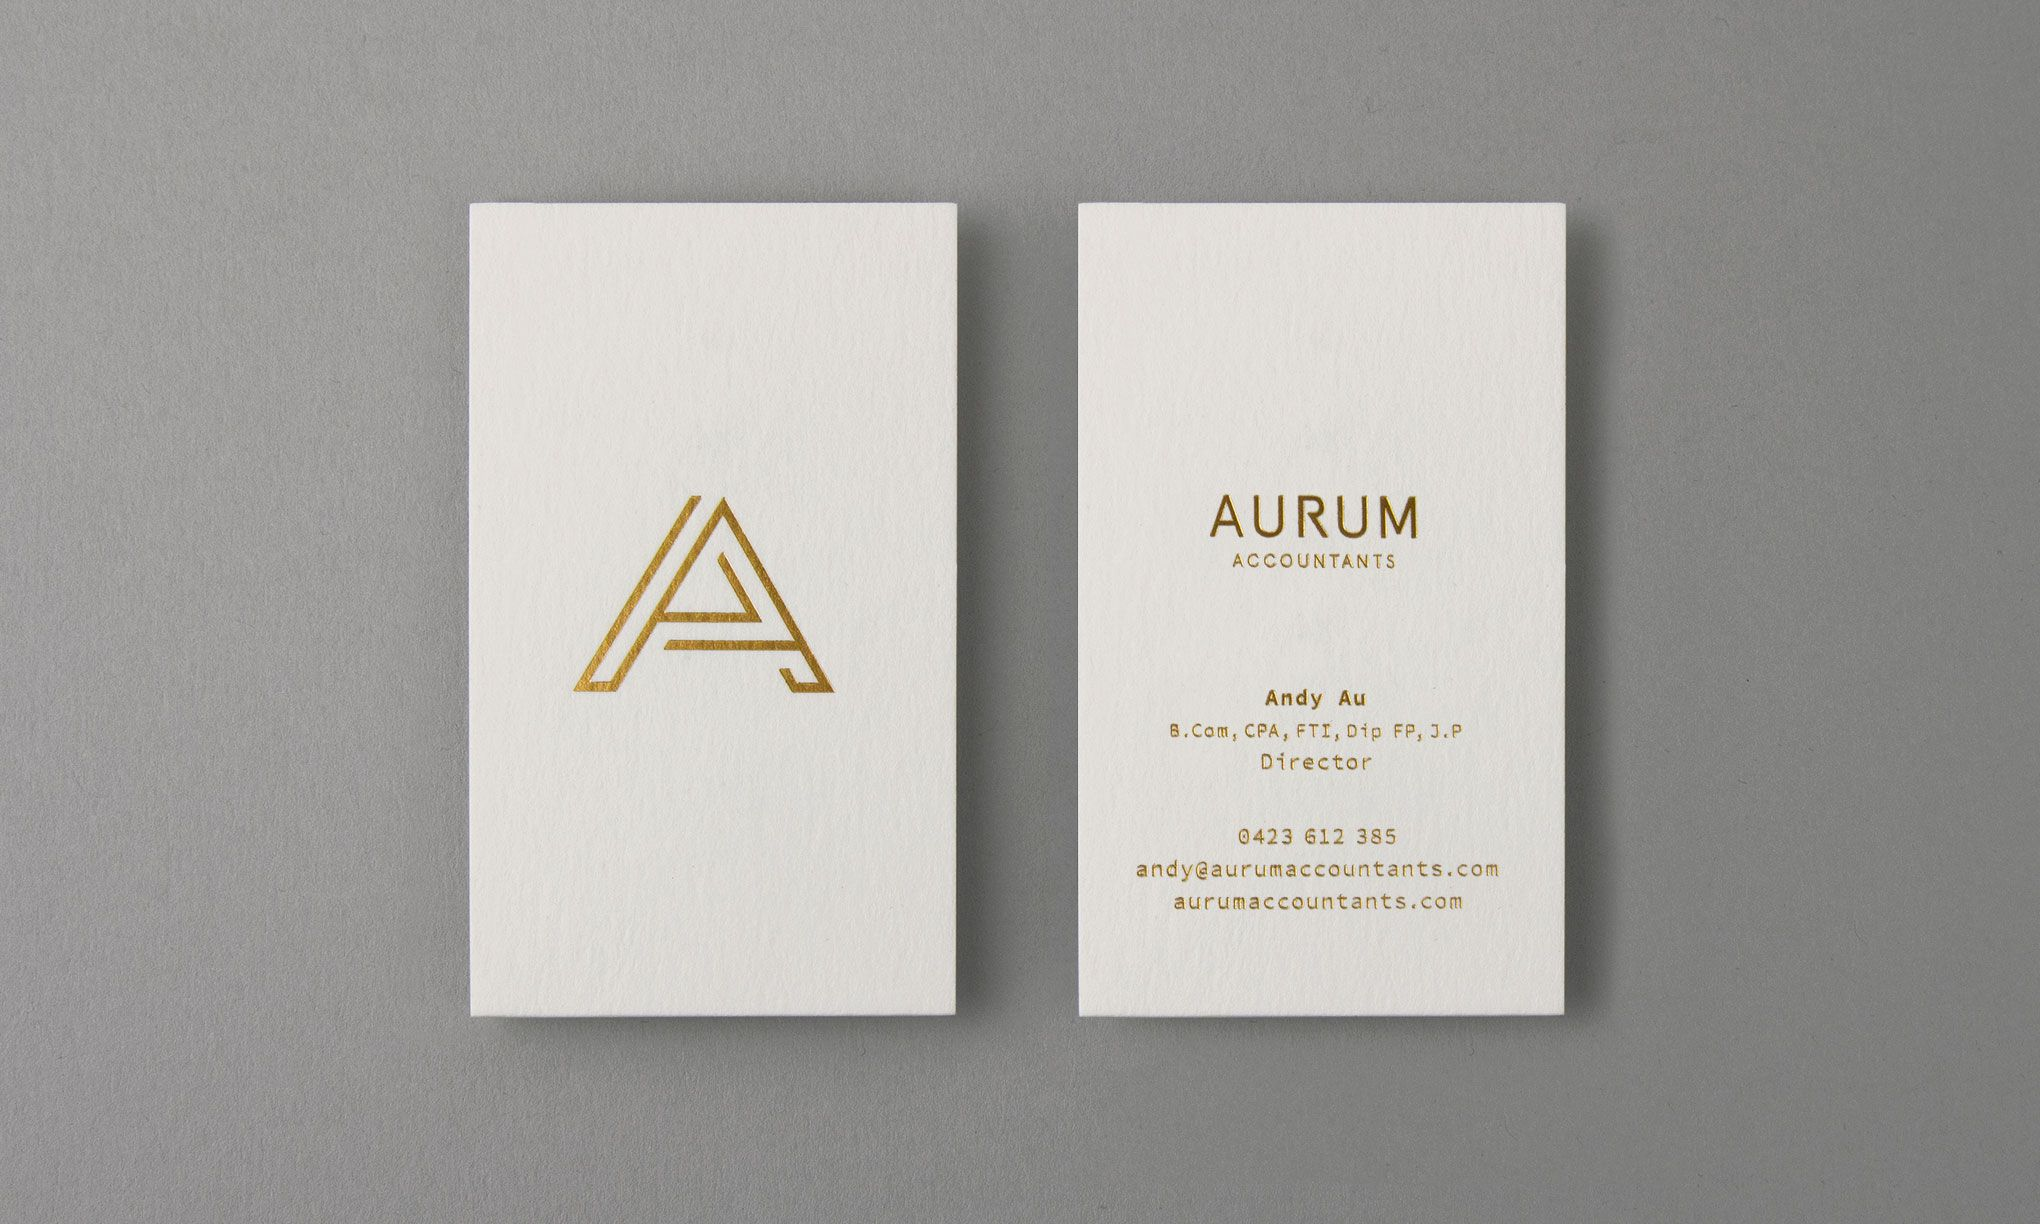 Visual identity and business cards for Aurum Accountants designed ...